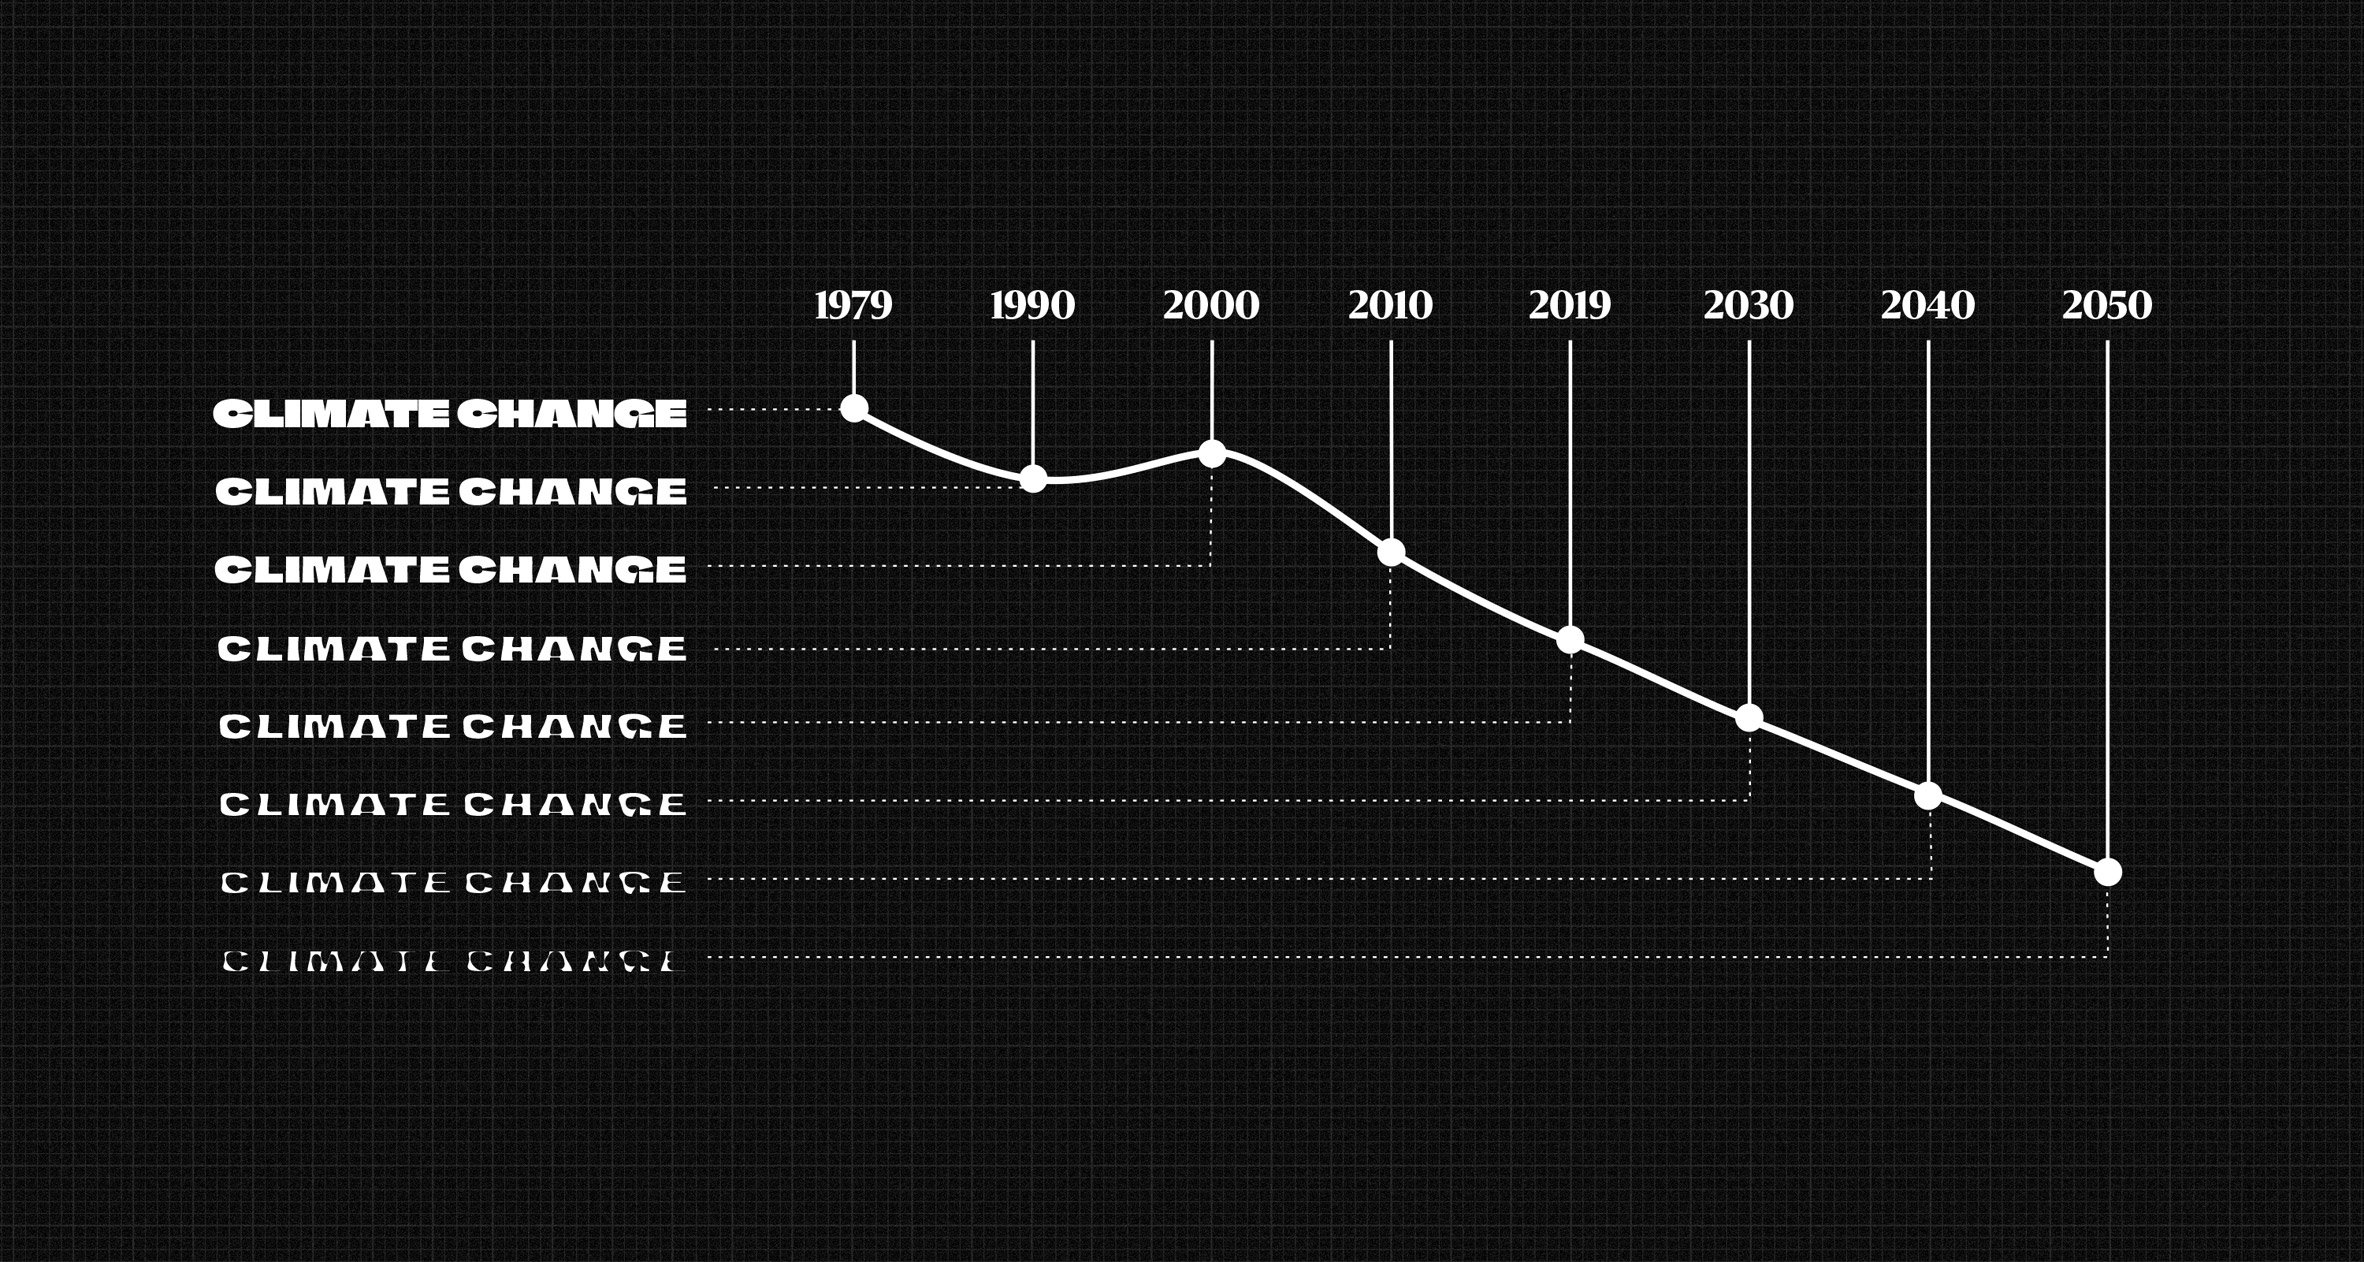 Graph showing the decline in arctic sea ice using the Climate Change Font by Helsingin Sanomat